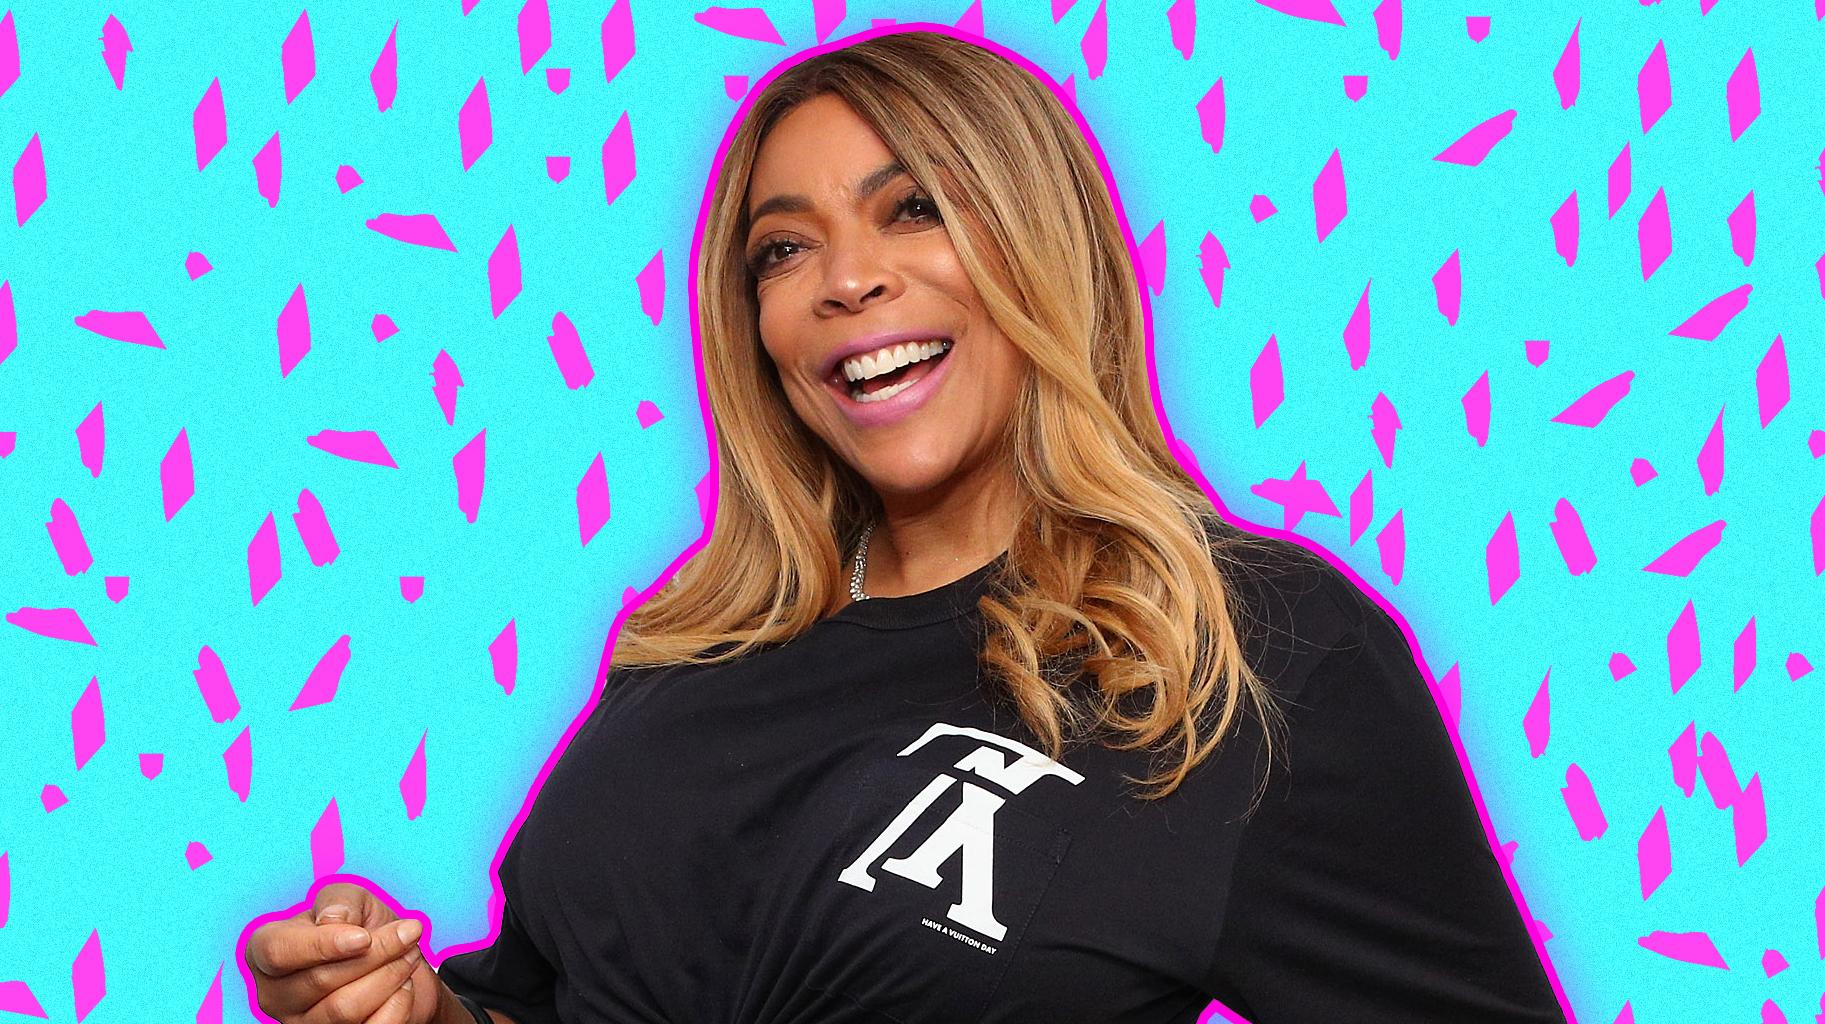 Wendy Williams And Her Son Link Up With Snoop Dogg At 50 Cent's Party - Pics & Video